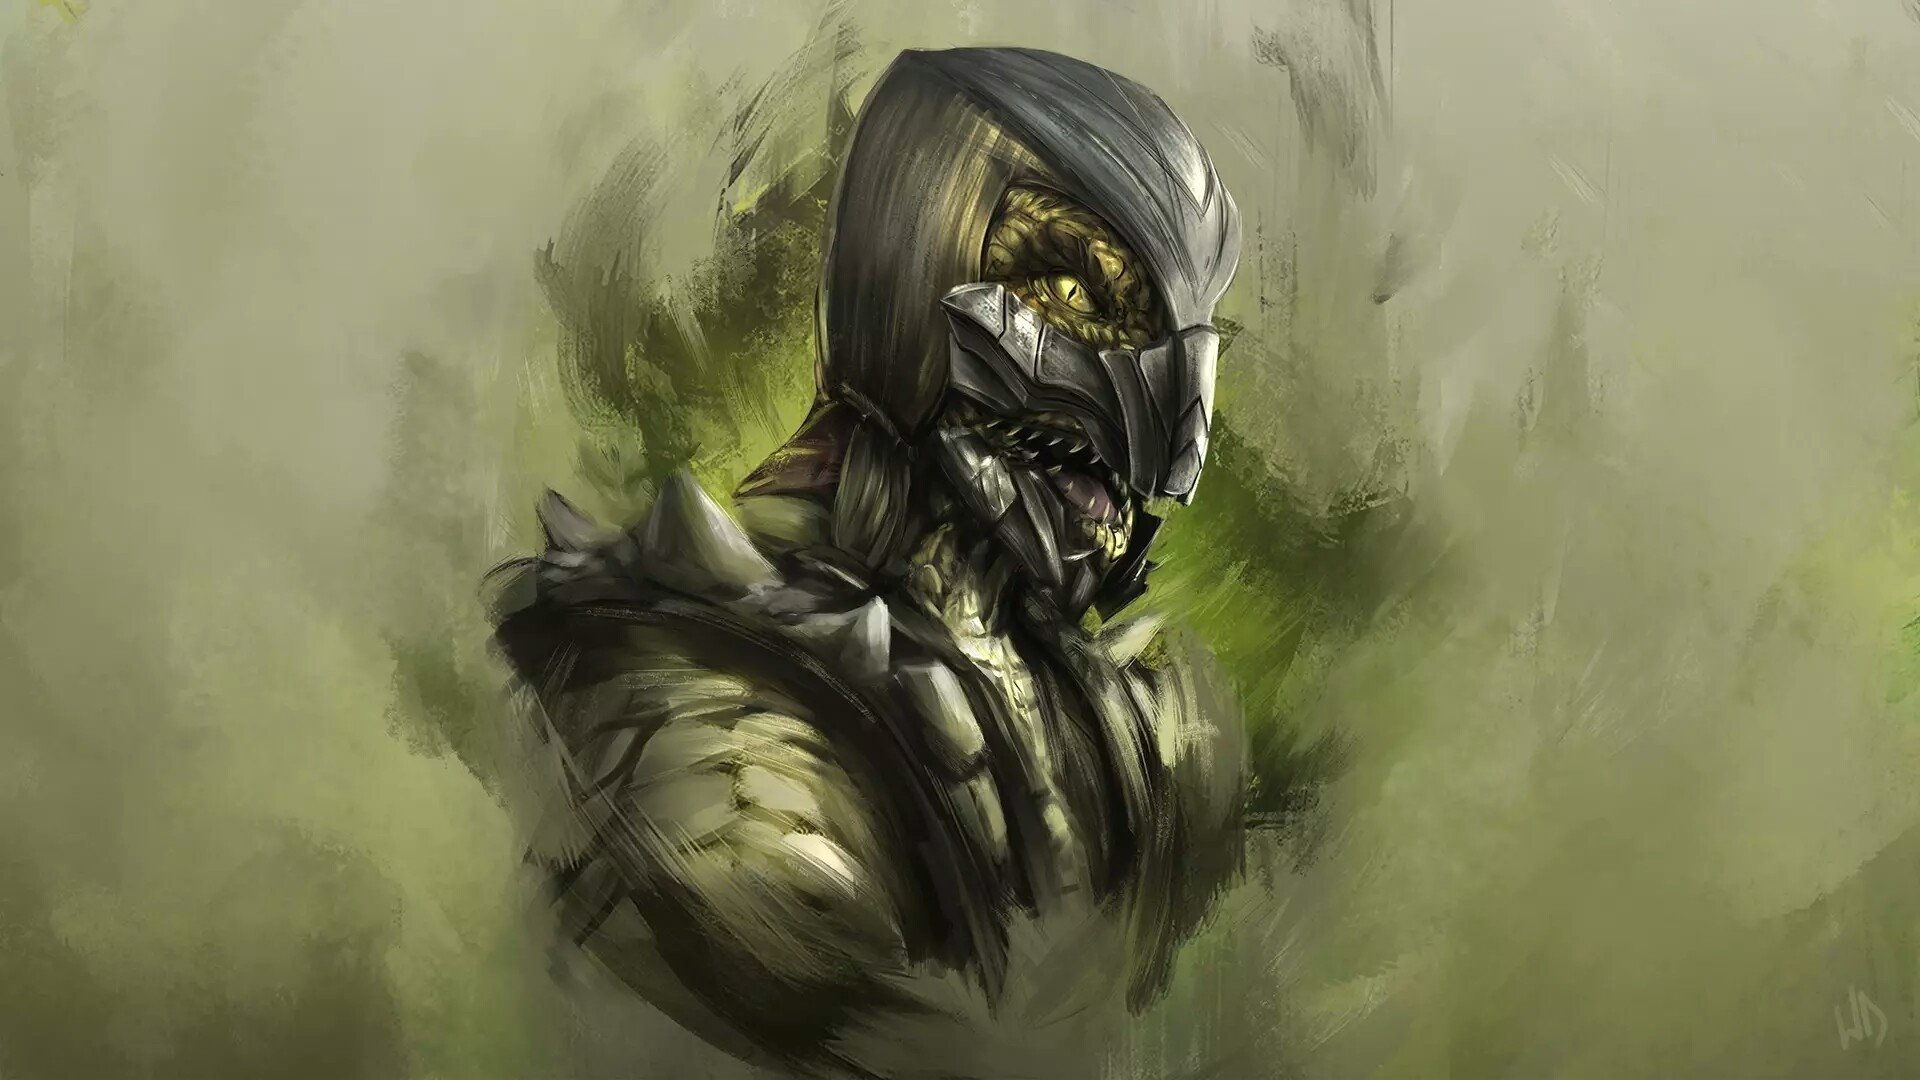 1 reptile (mortal kombat) hd wallpapers | background images